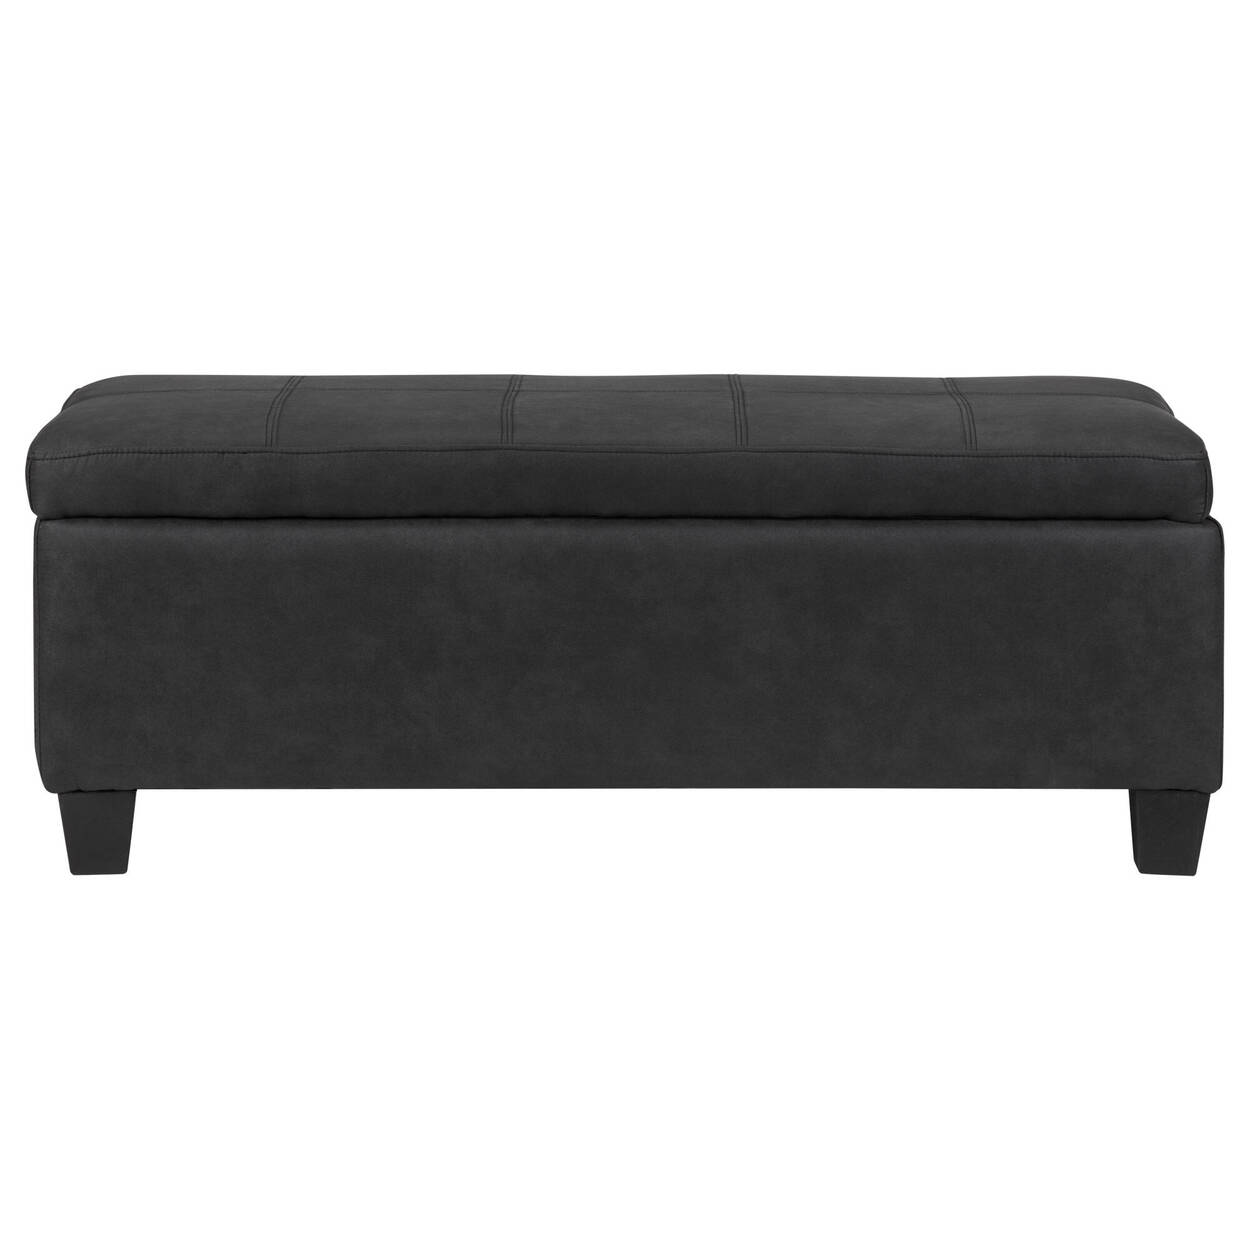 Textured Faux Leather Storage Ottoman